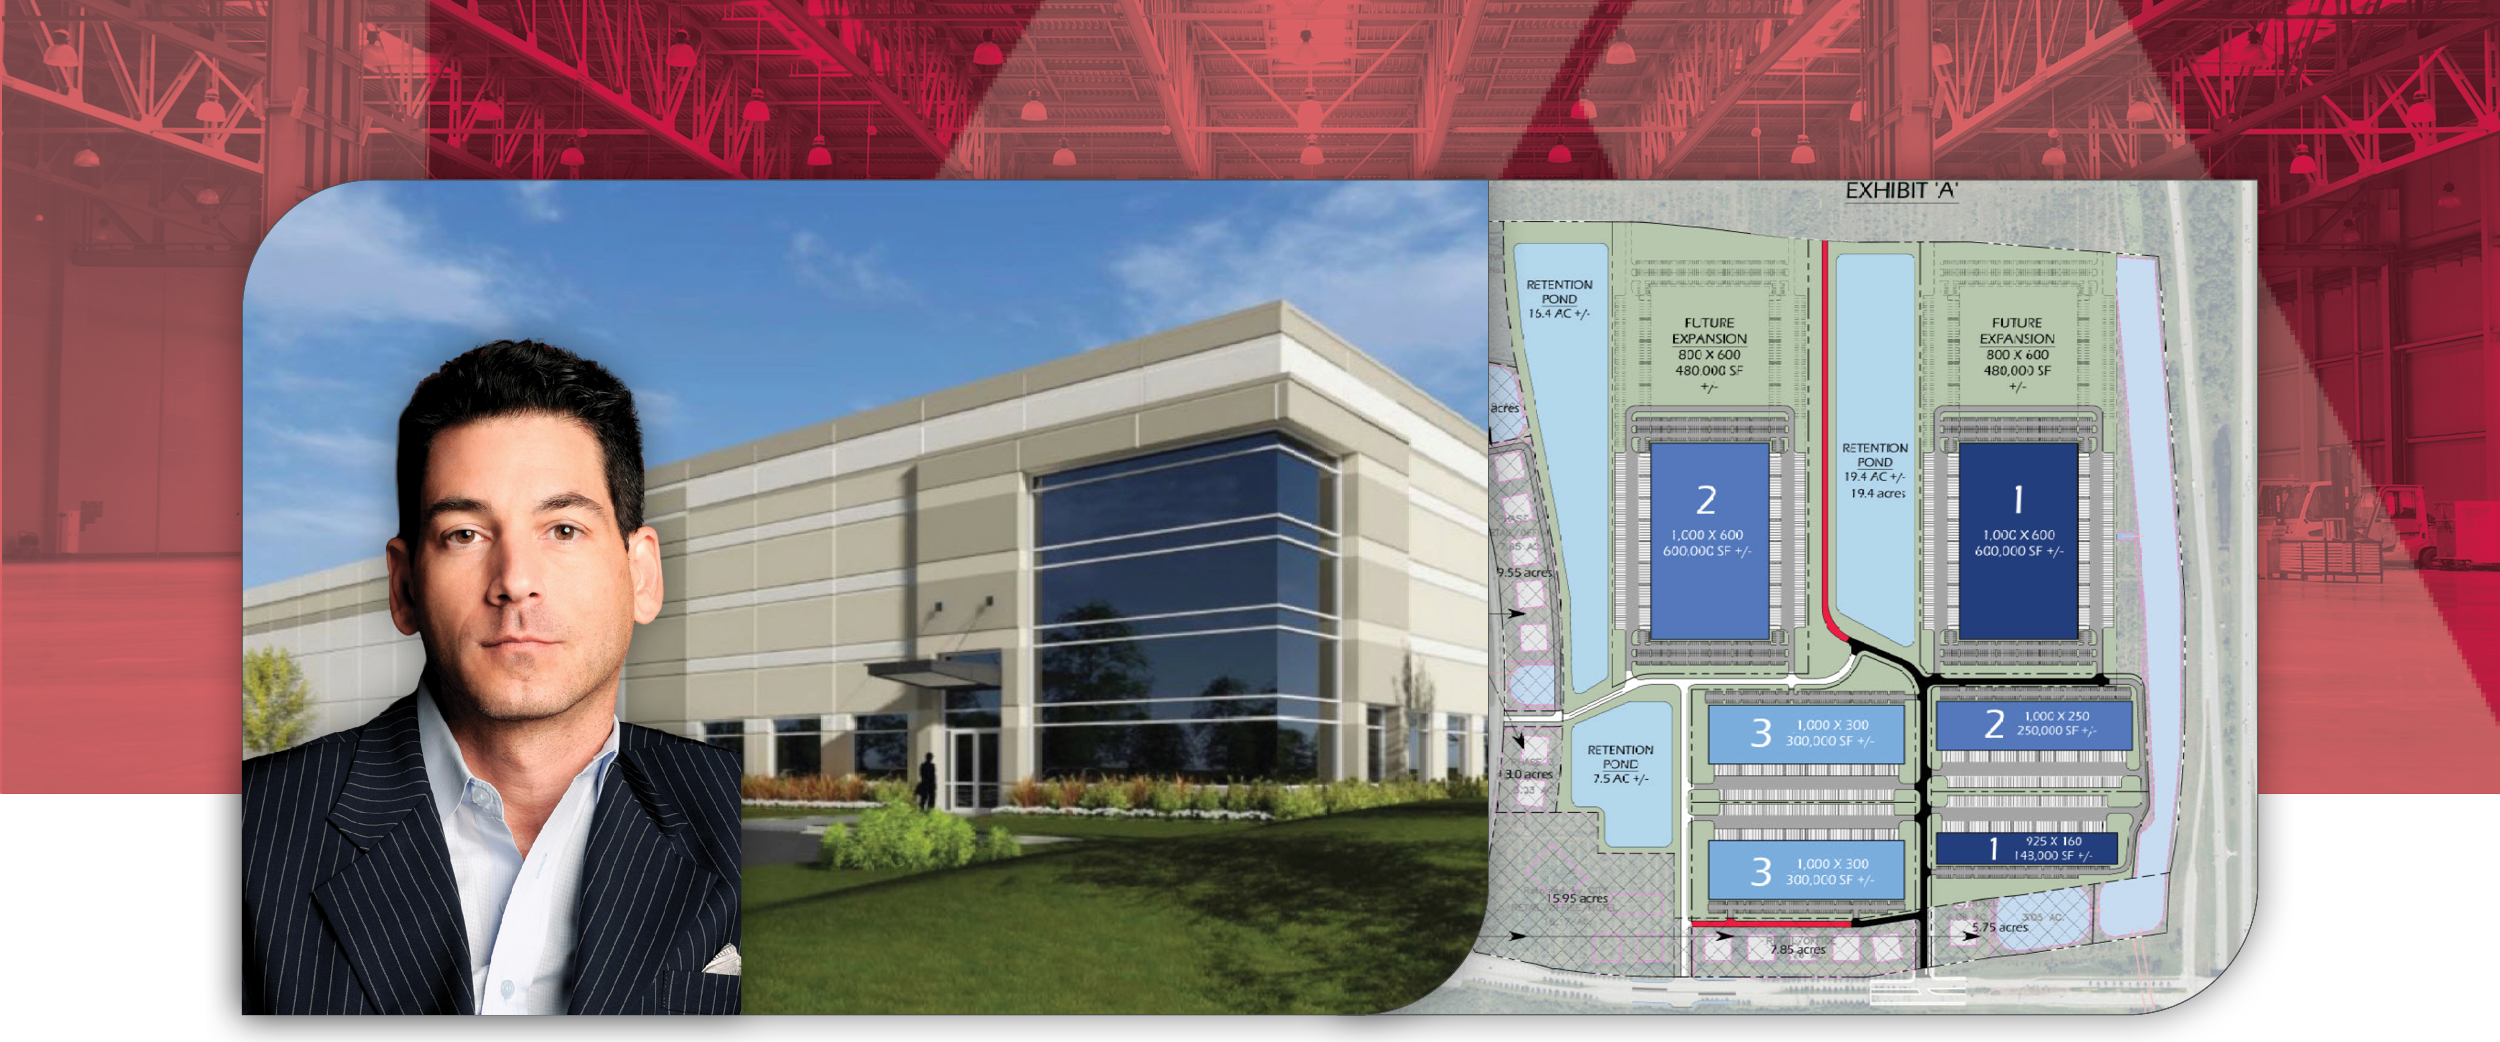 Sansone Group Awarded Contract to Purchase 300 AC for 3.2 Million SF Class A Industrial Project